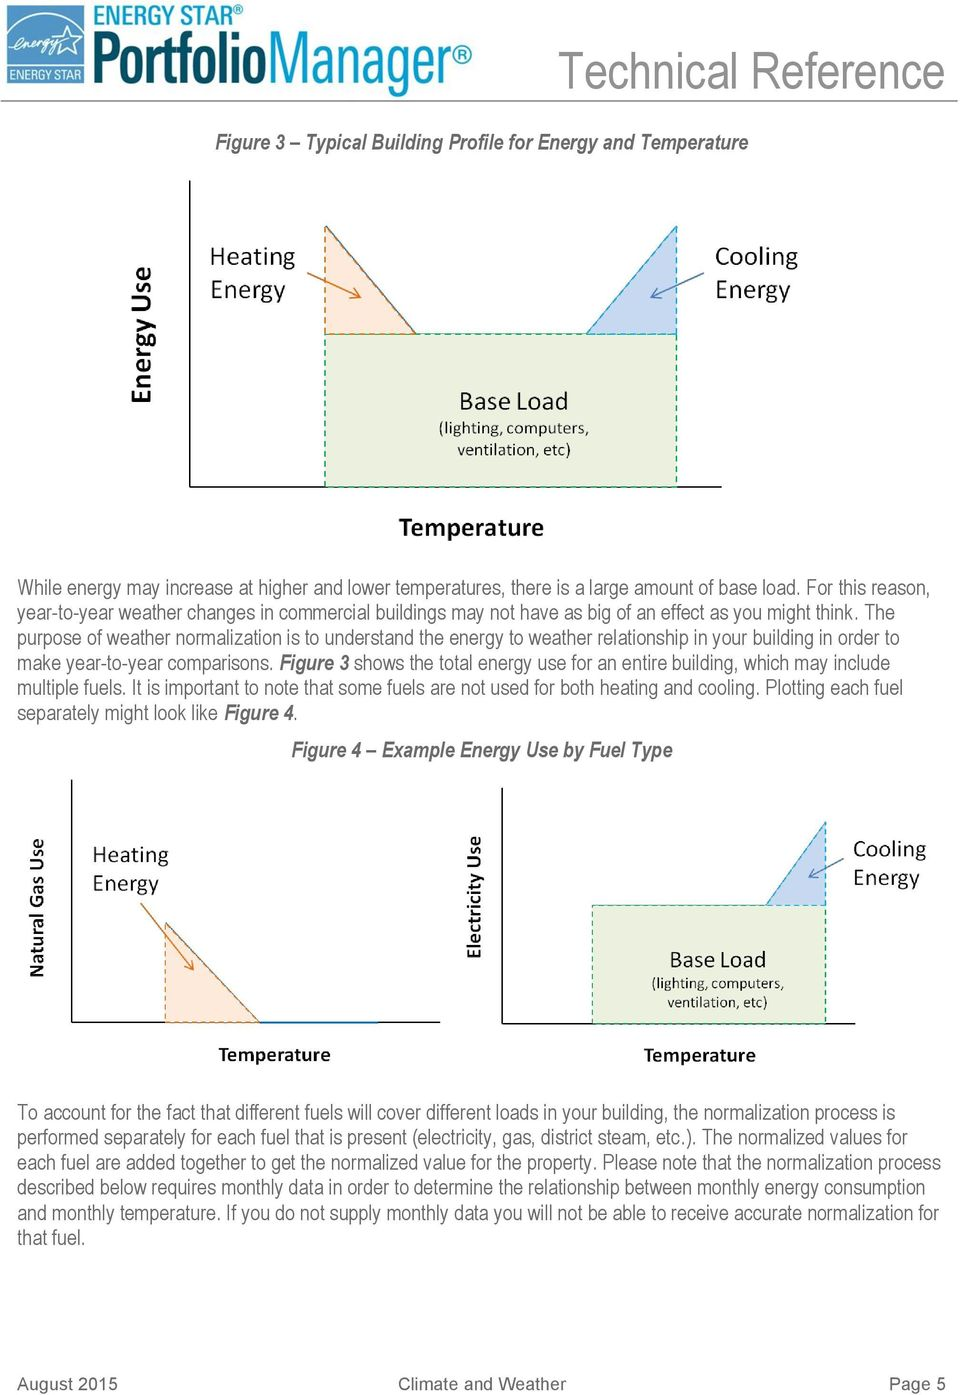 The purpose of weather normalization is to understand the energy to weather relationship in your building in order to make year-to-year comparisons.